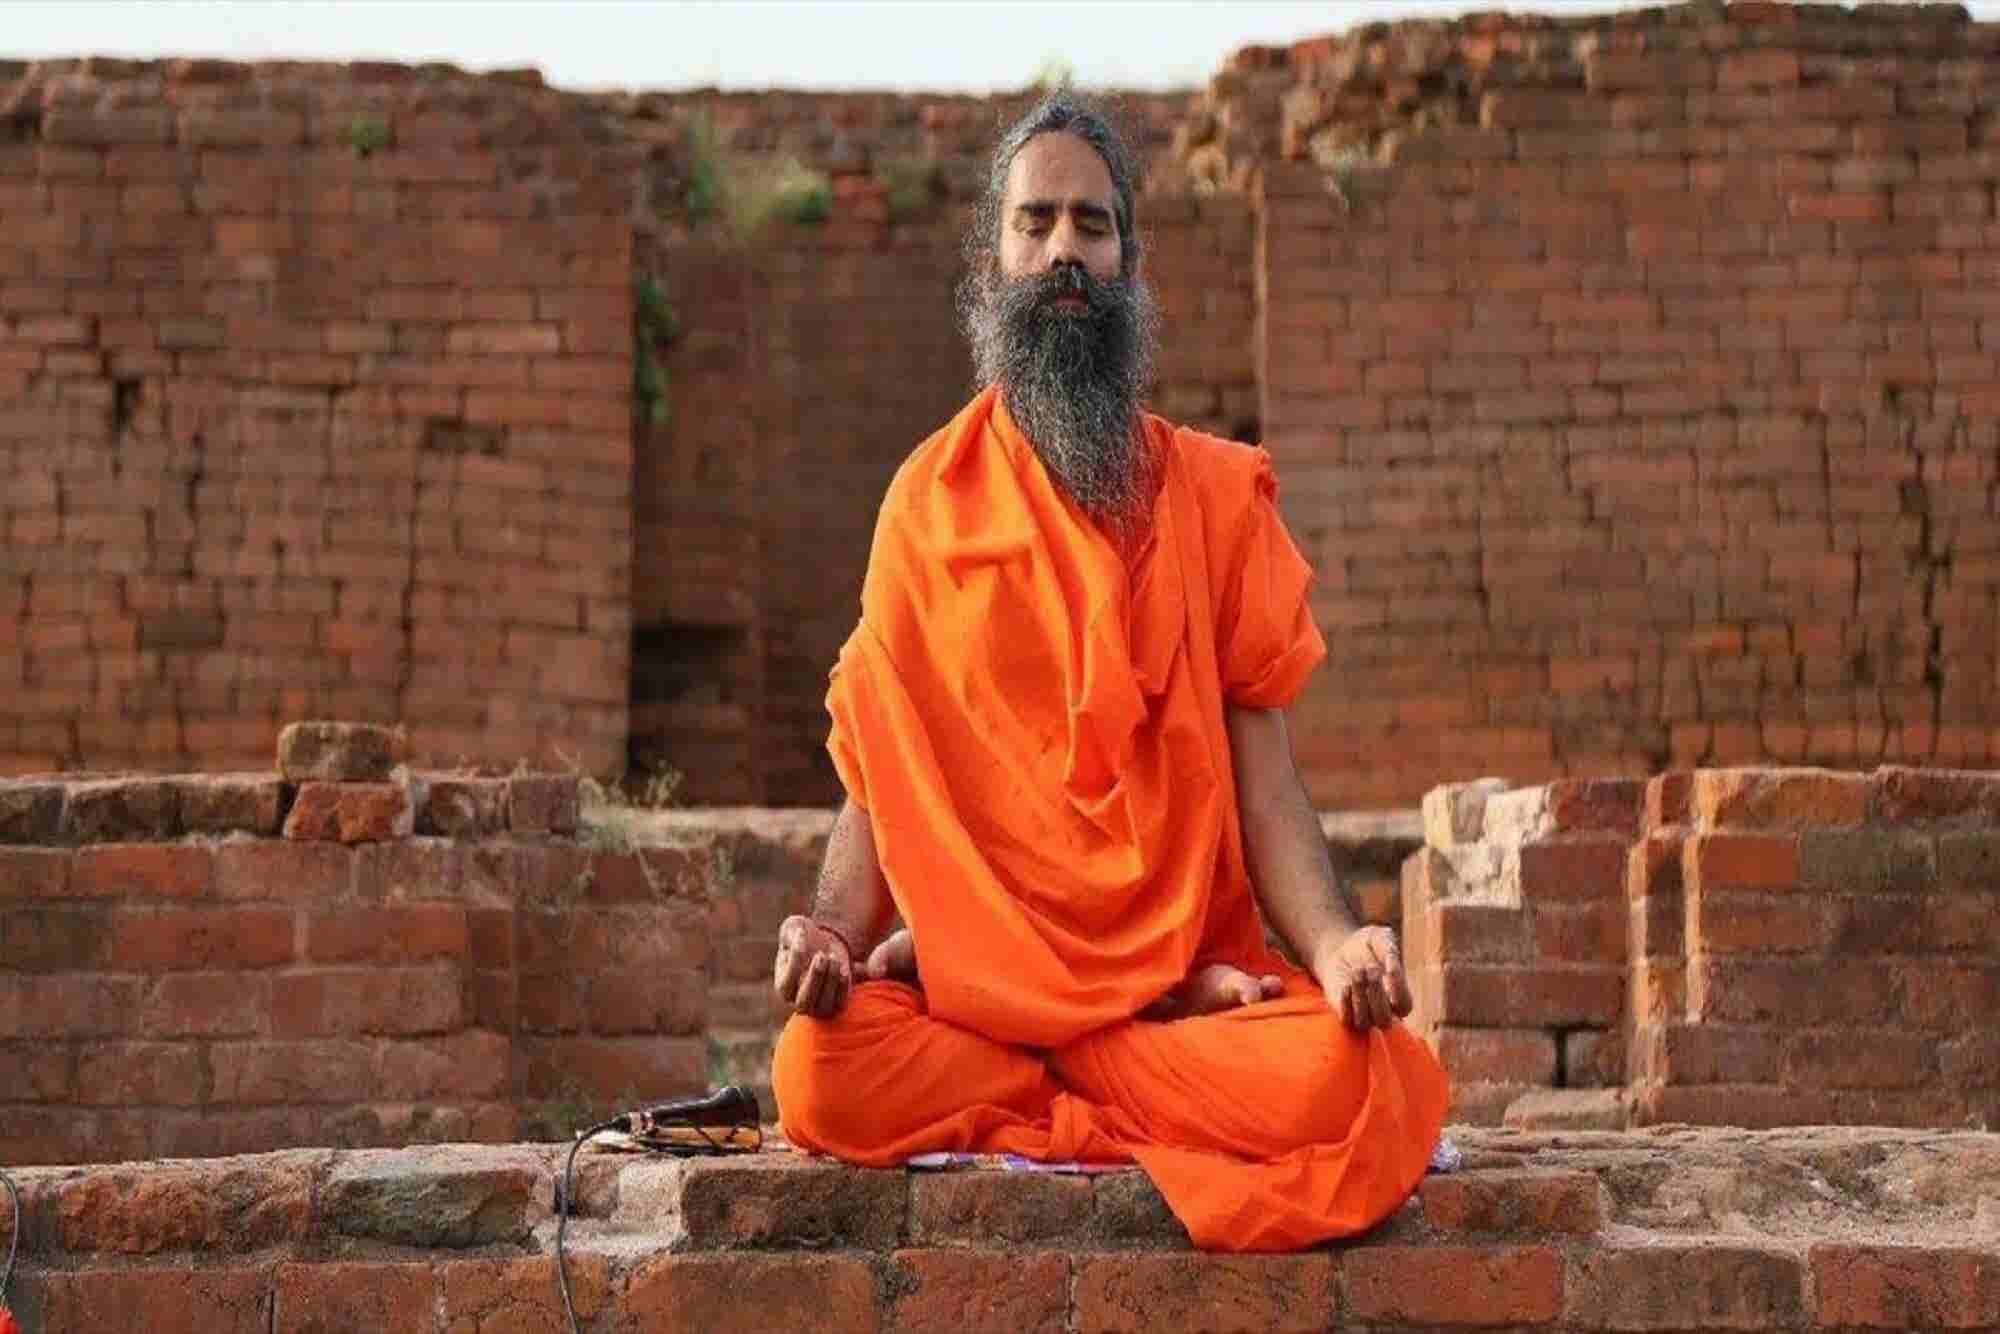 Baba Ramdev has a New Move and Jeff Bezos Aims for the Moon. 4 Things to Know Today